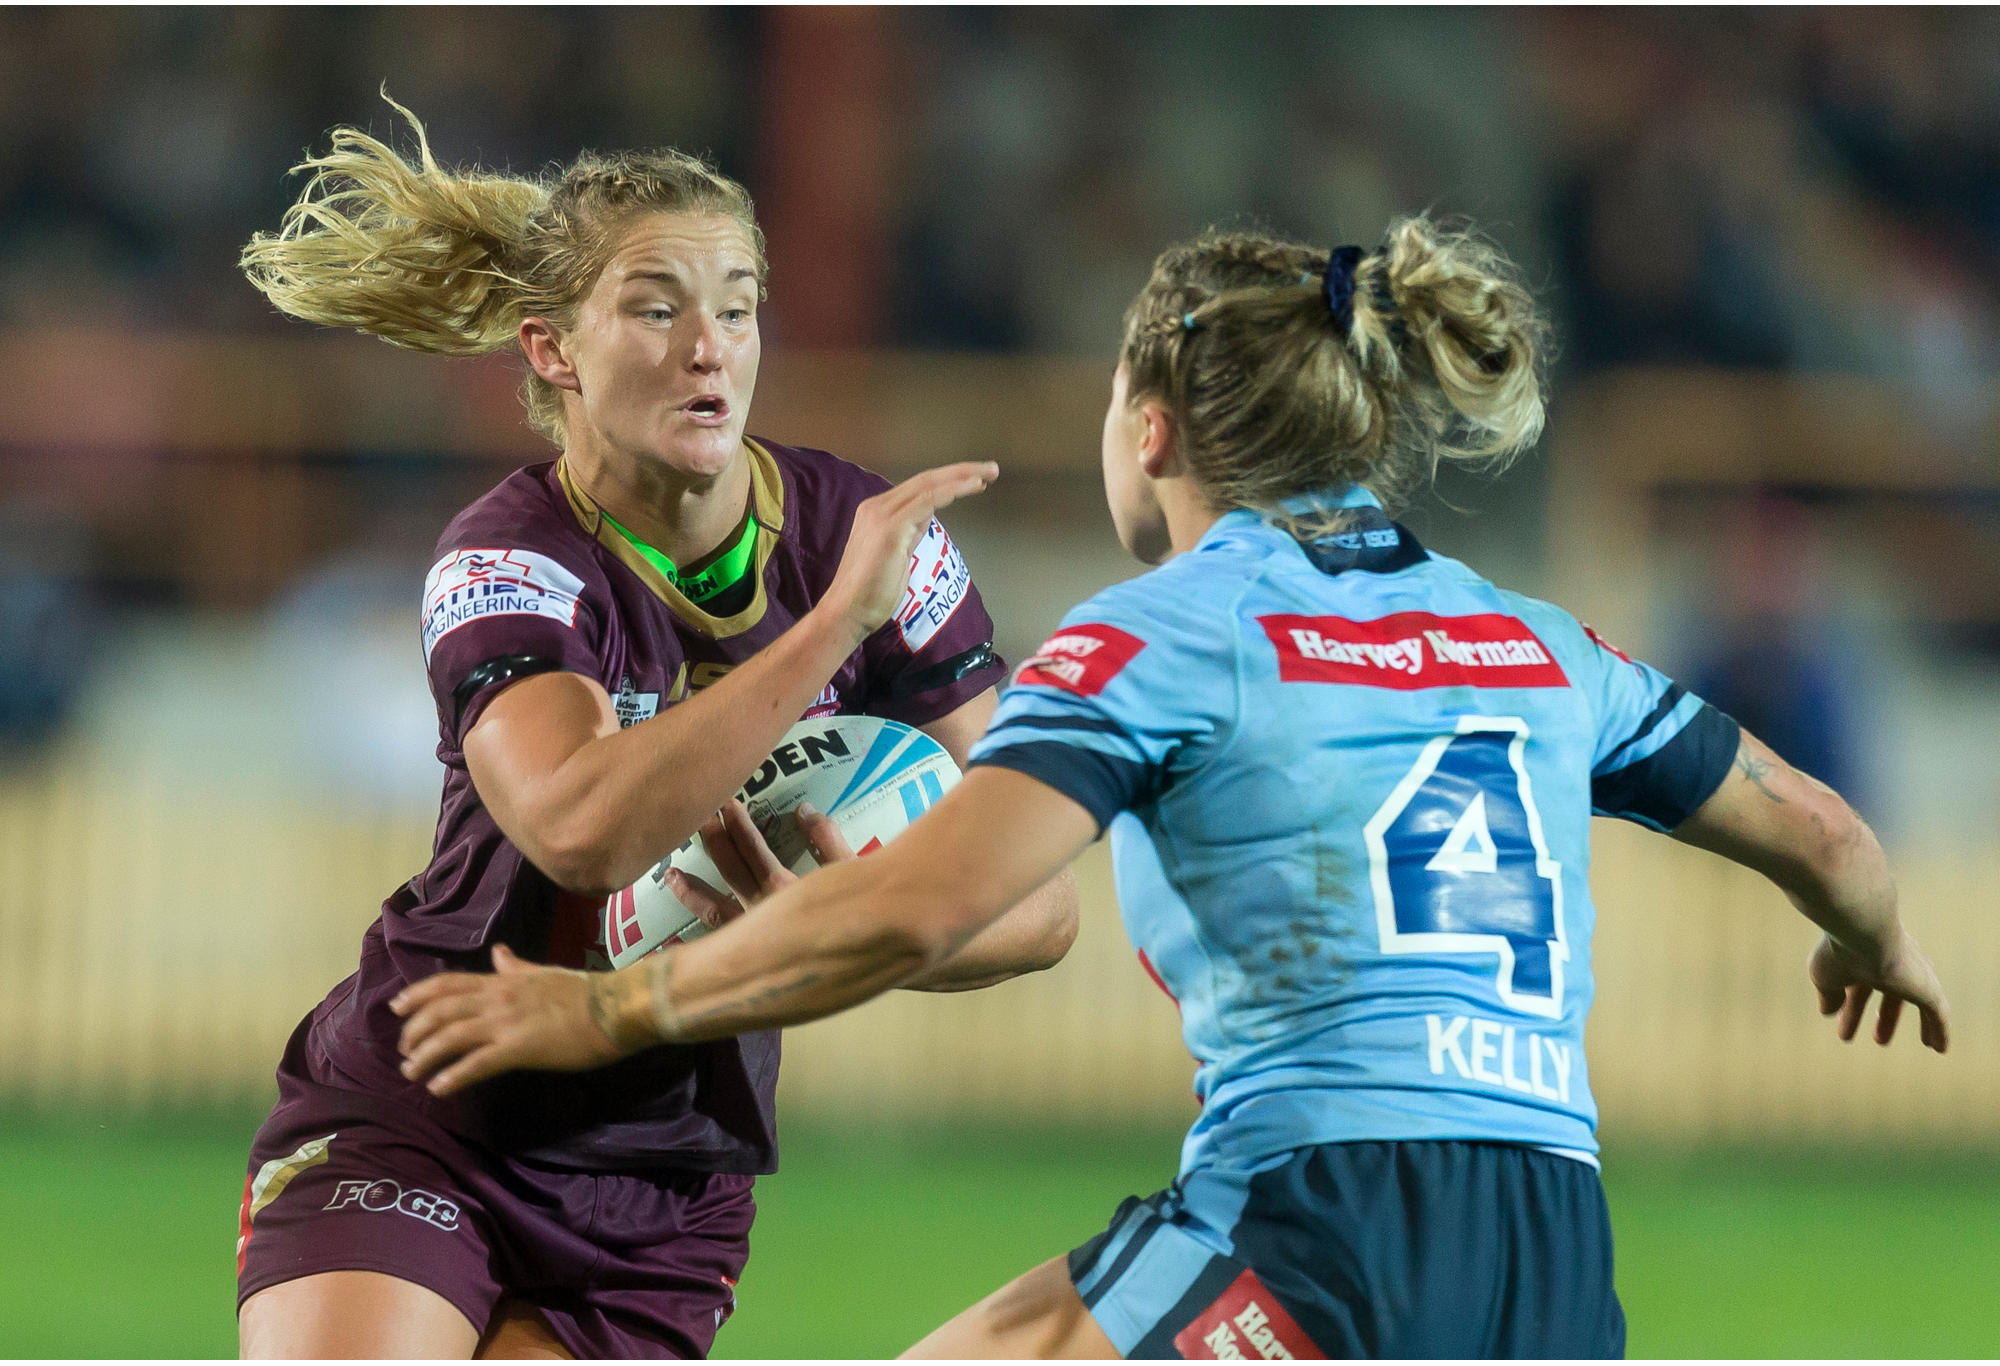 Meg Ward of the Maroons is tackled by Isabelle Kelly of the Blues.